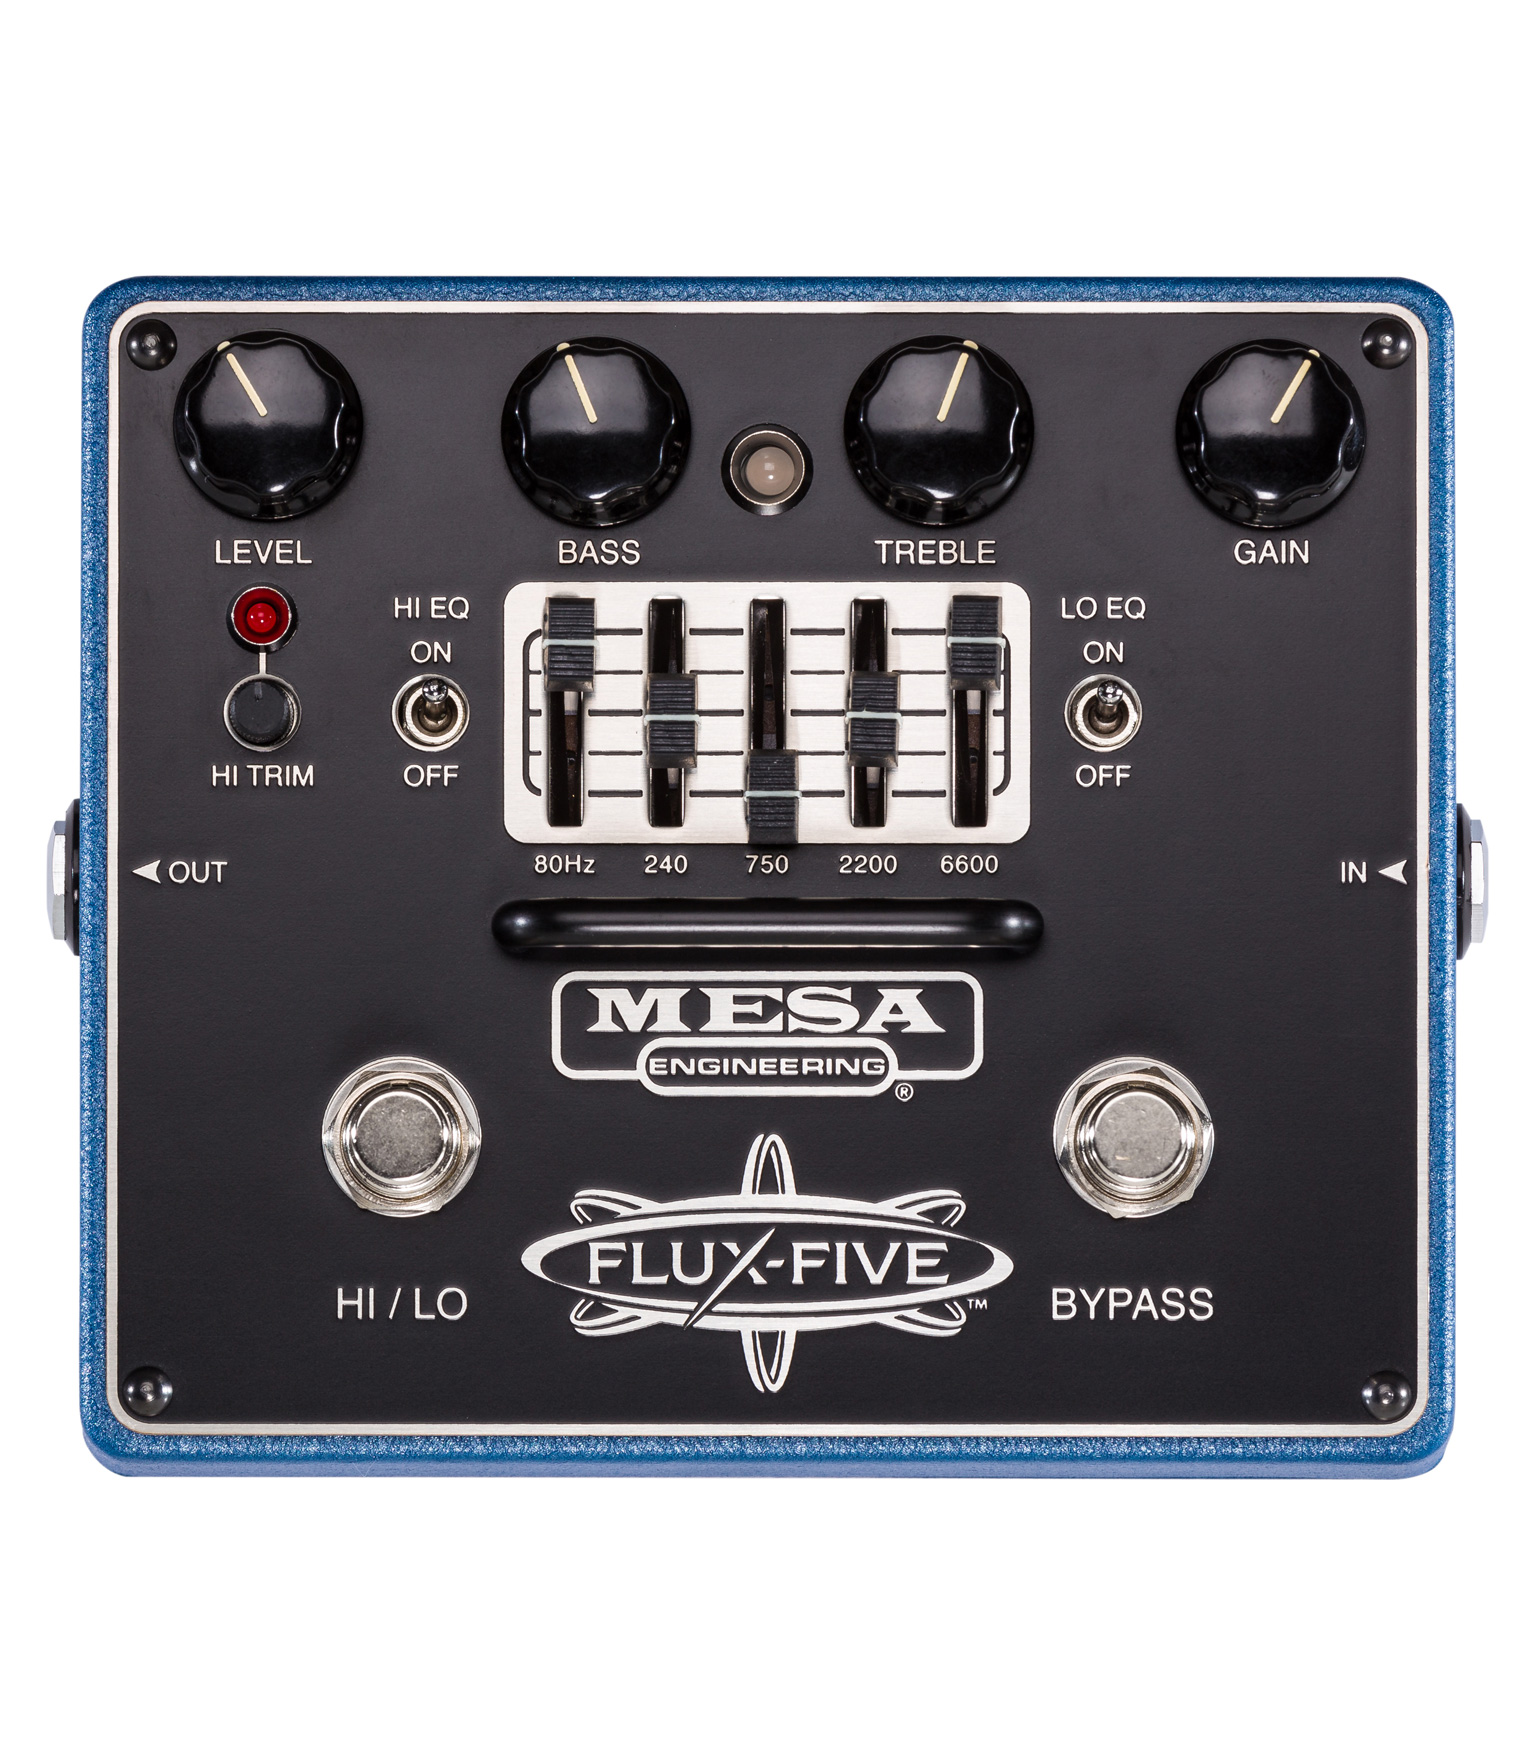 buy mesaboogie flux five overdrive pedal